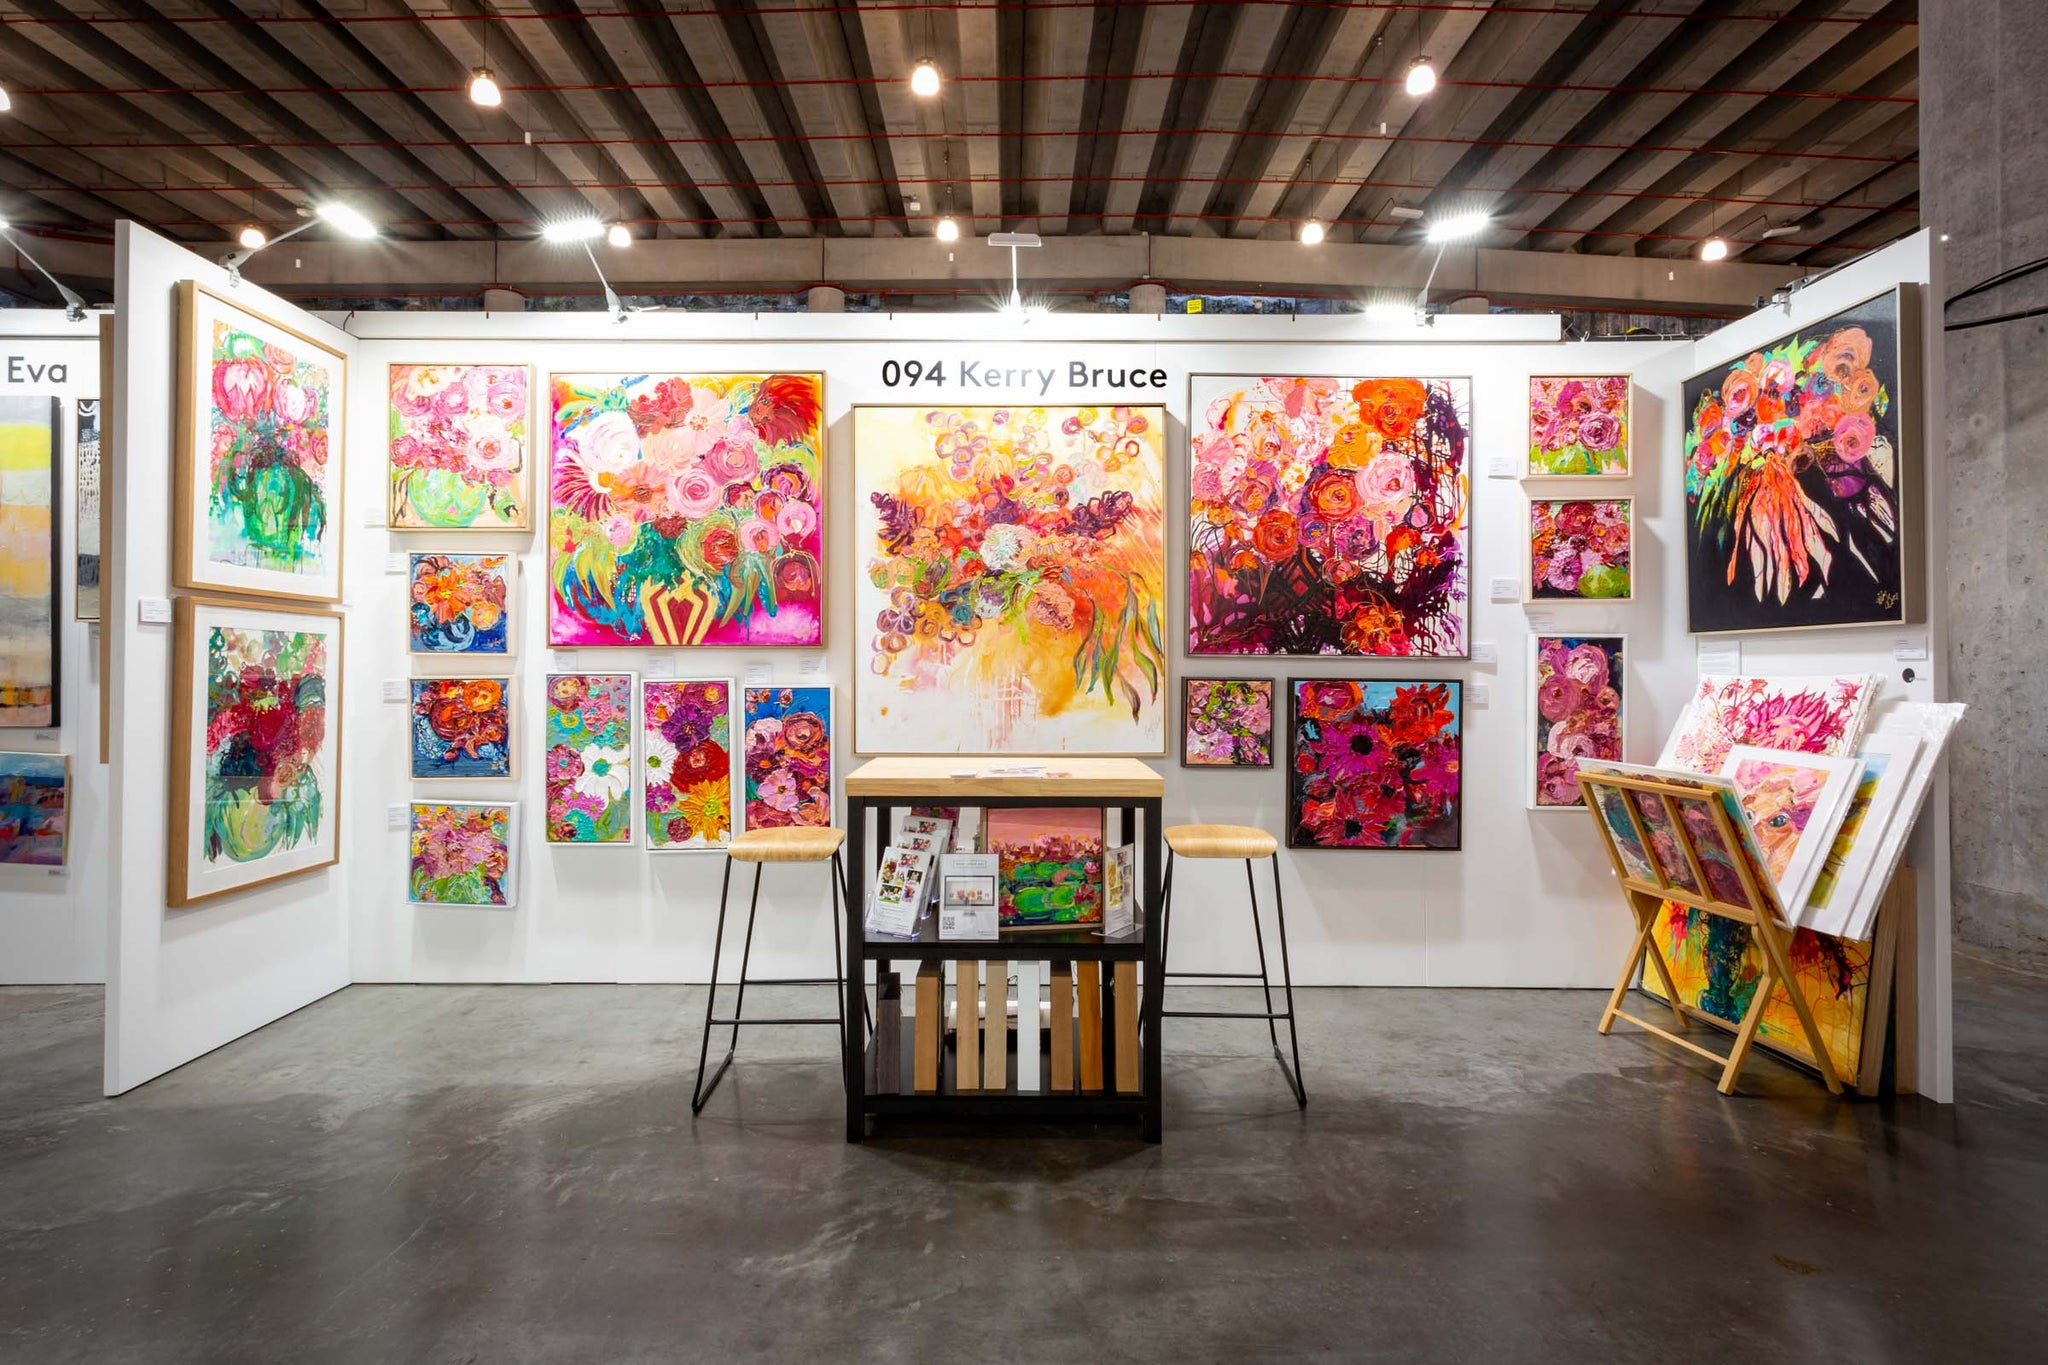 Kerry Bruce Art stand at The Other Art Fair (TOAF) Sydney March 2021